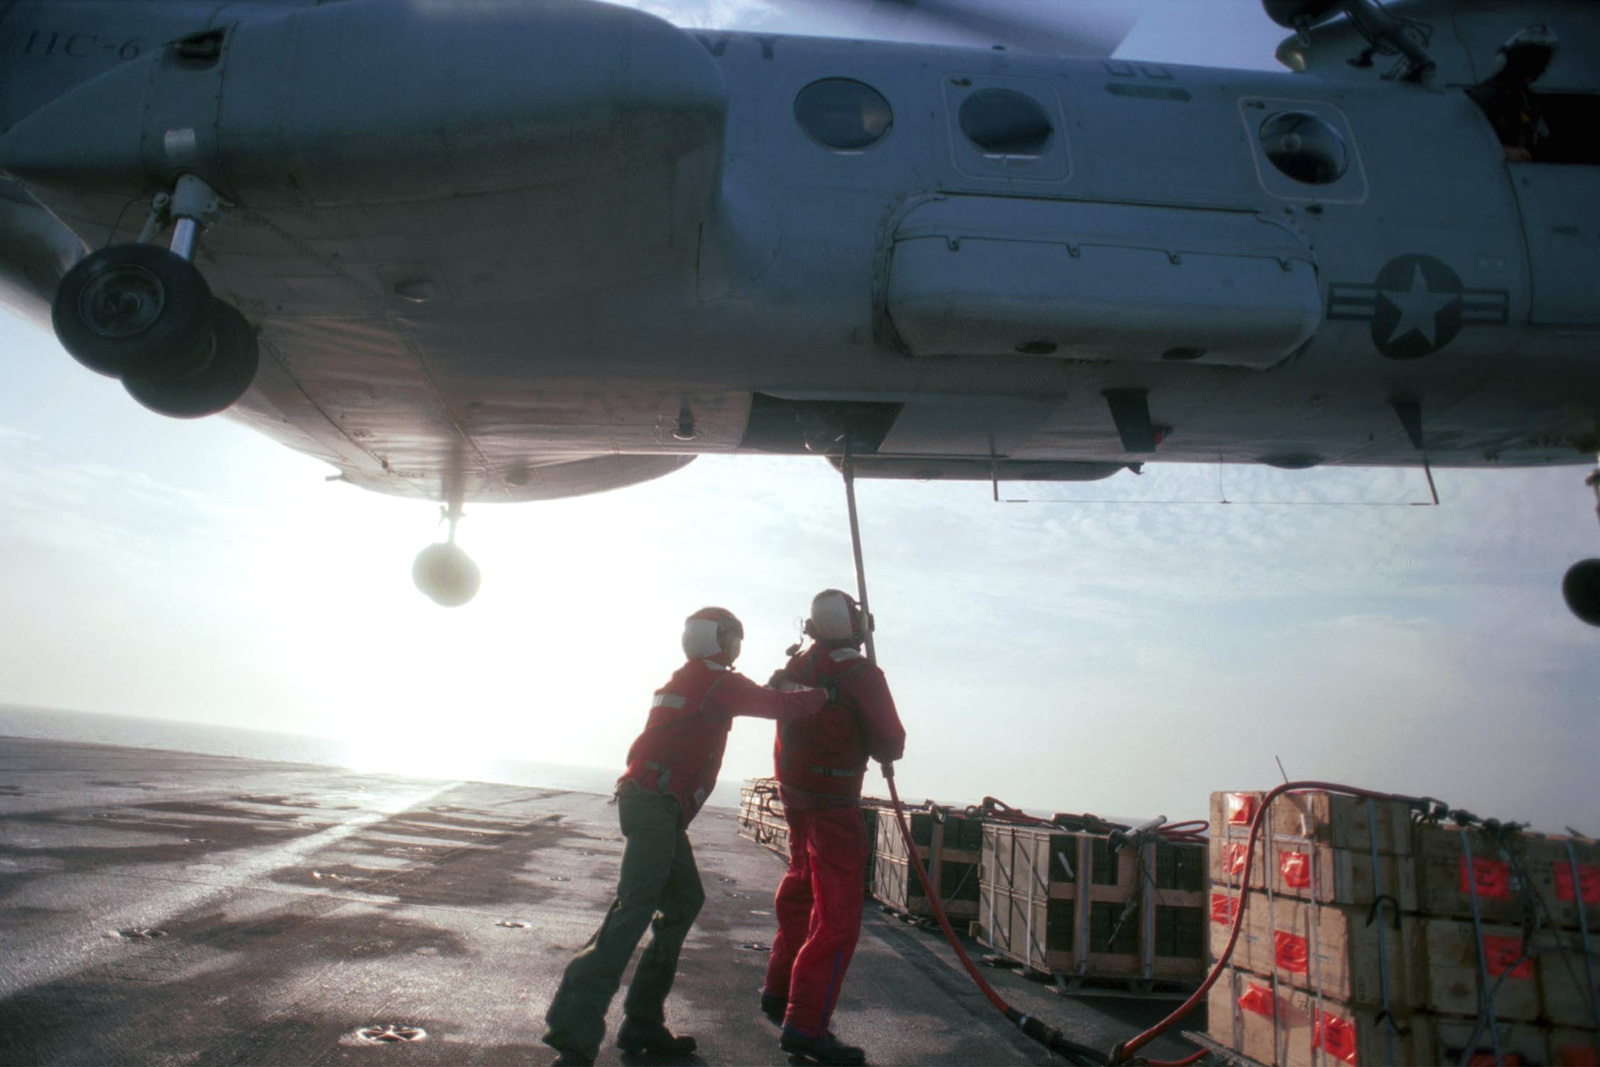 US Navy Aviation Ordnanceman Second Class Toby Snowden and US Navy AIRMAN Terrence Hill hook ordnance containers to an CH-46D Sea Knight to be delivered to USS ENTERPRISE (CVN 65) (not shown) during a weapons offload on the flight deck of USS HARRY S. TRUMAN (CVN 75)